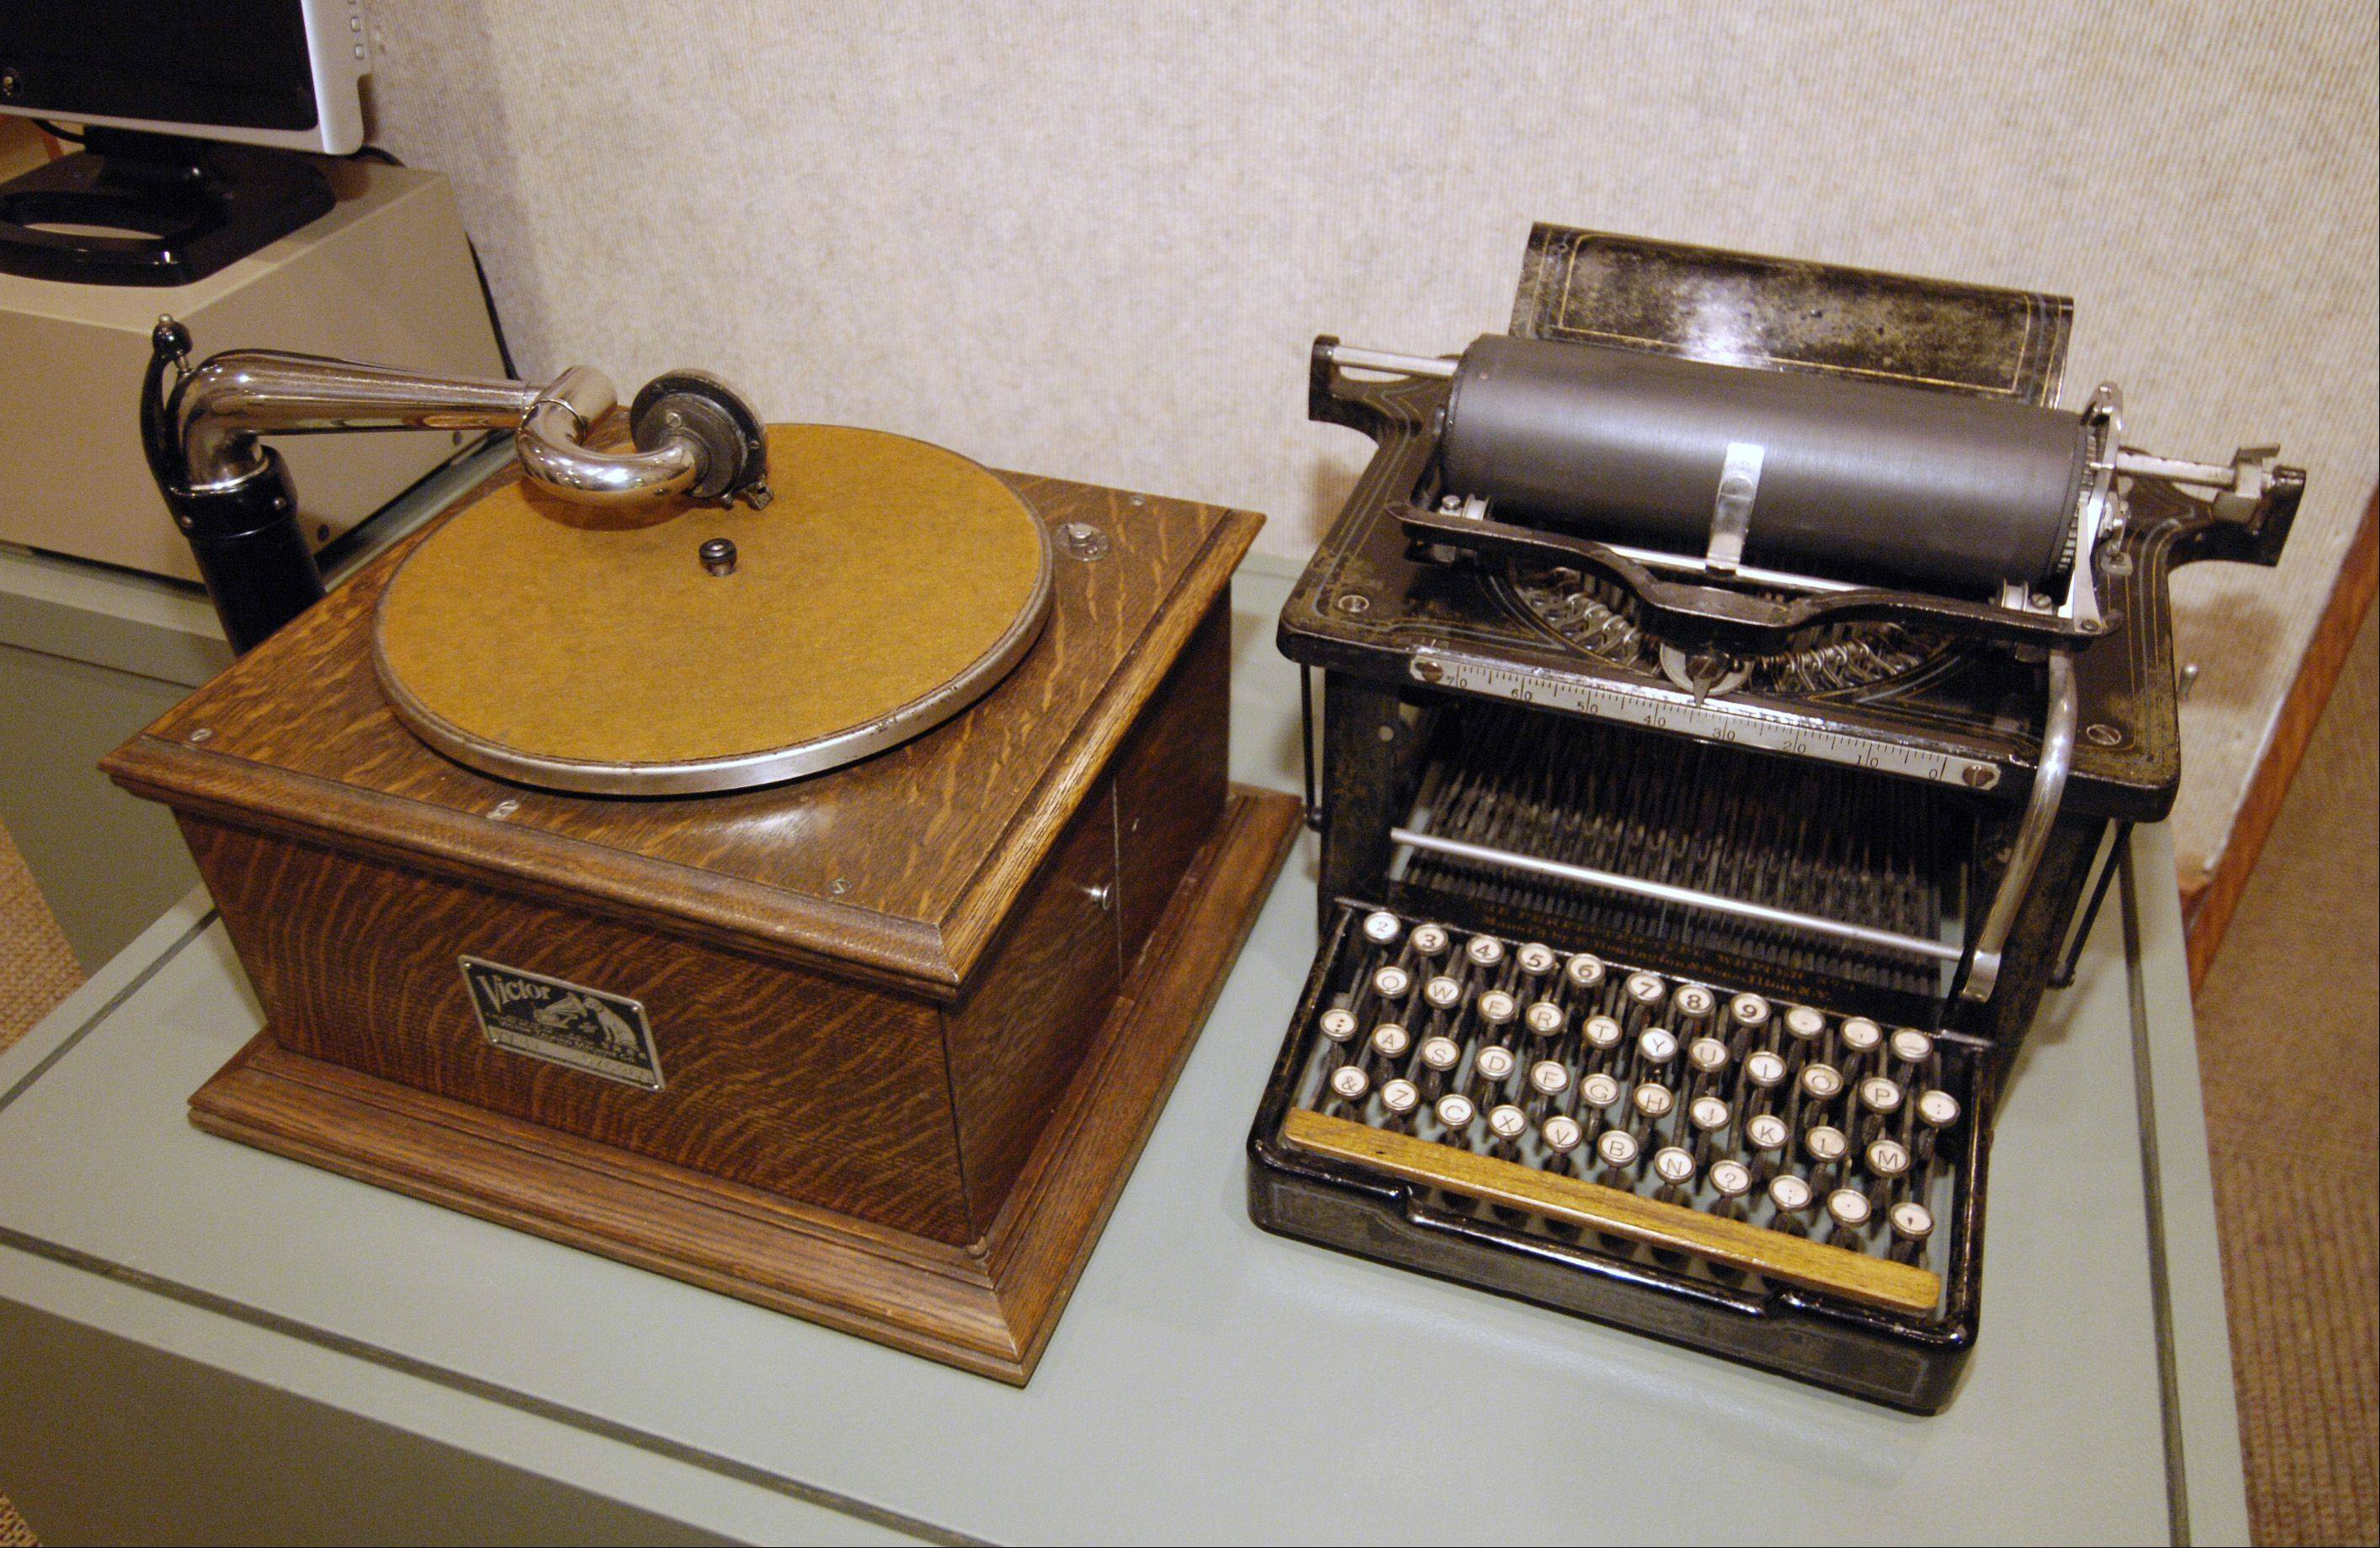 "An early record player and typewriter are part of the Hagley Museum's traveling show, ""Centuries of Progress: American World's Fairs: 1853-1982,"" on display at the Elmhurst Historical Museum."